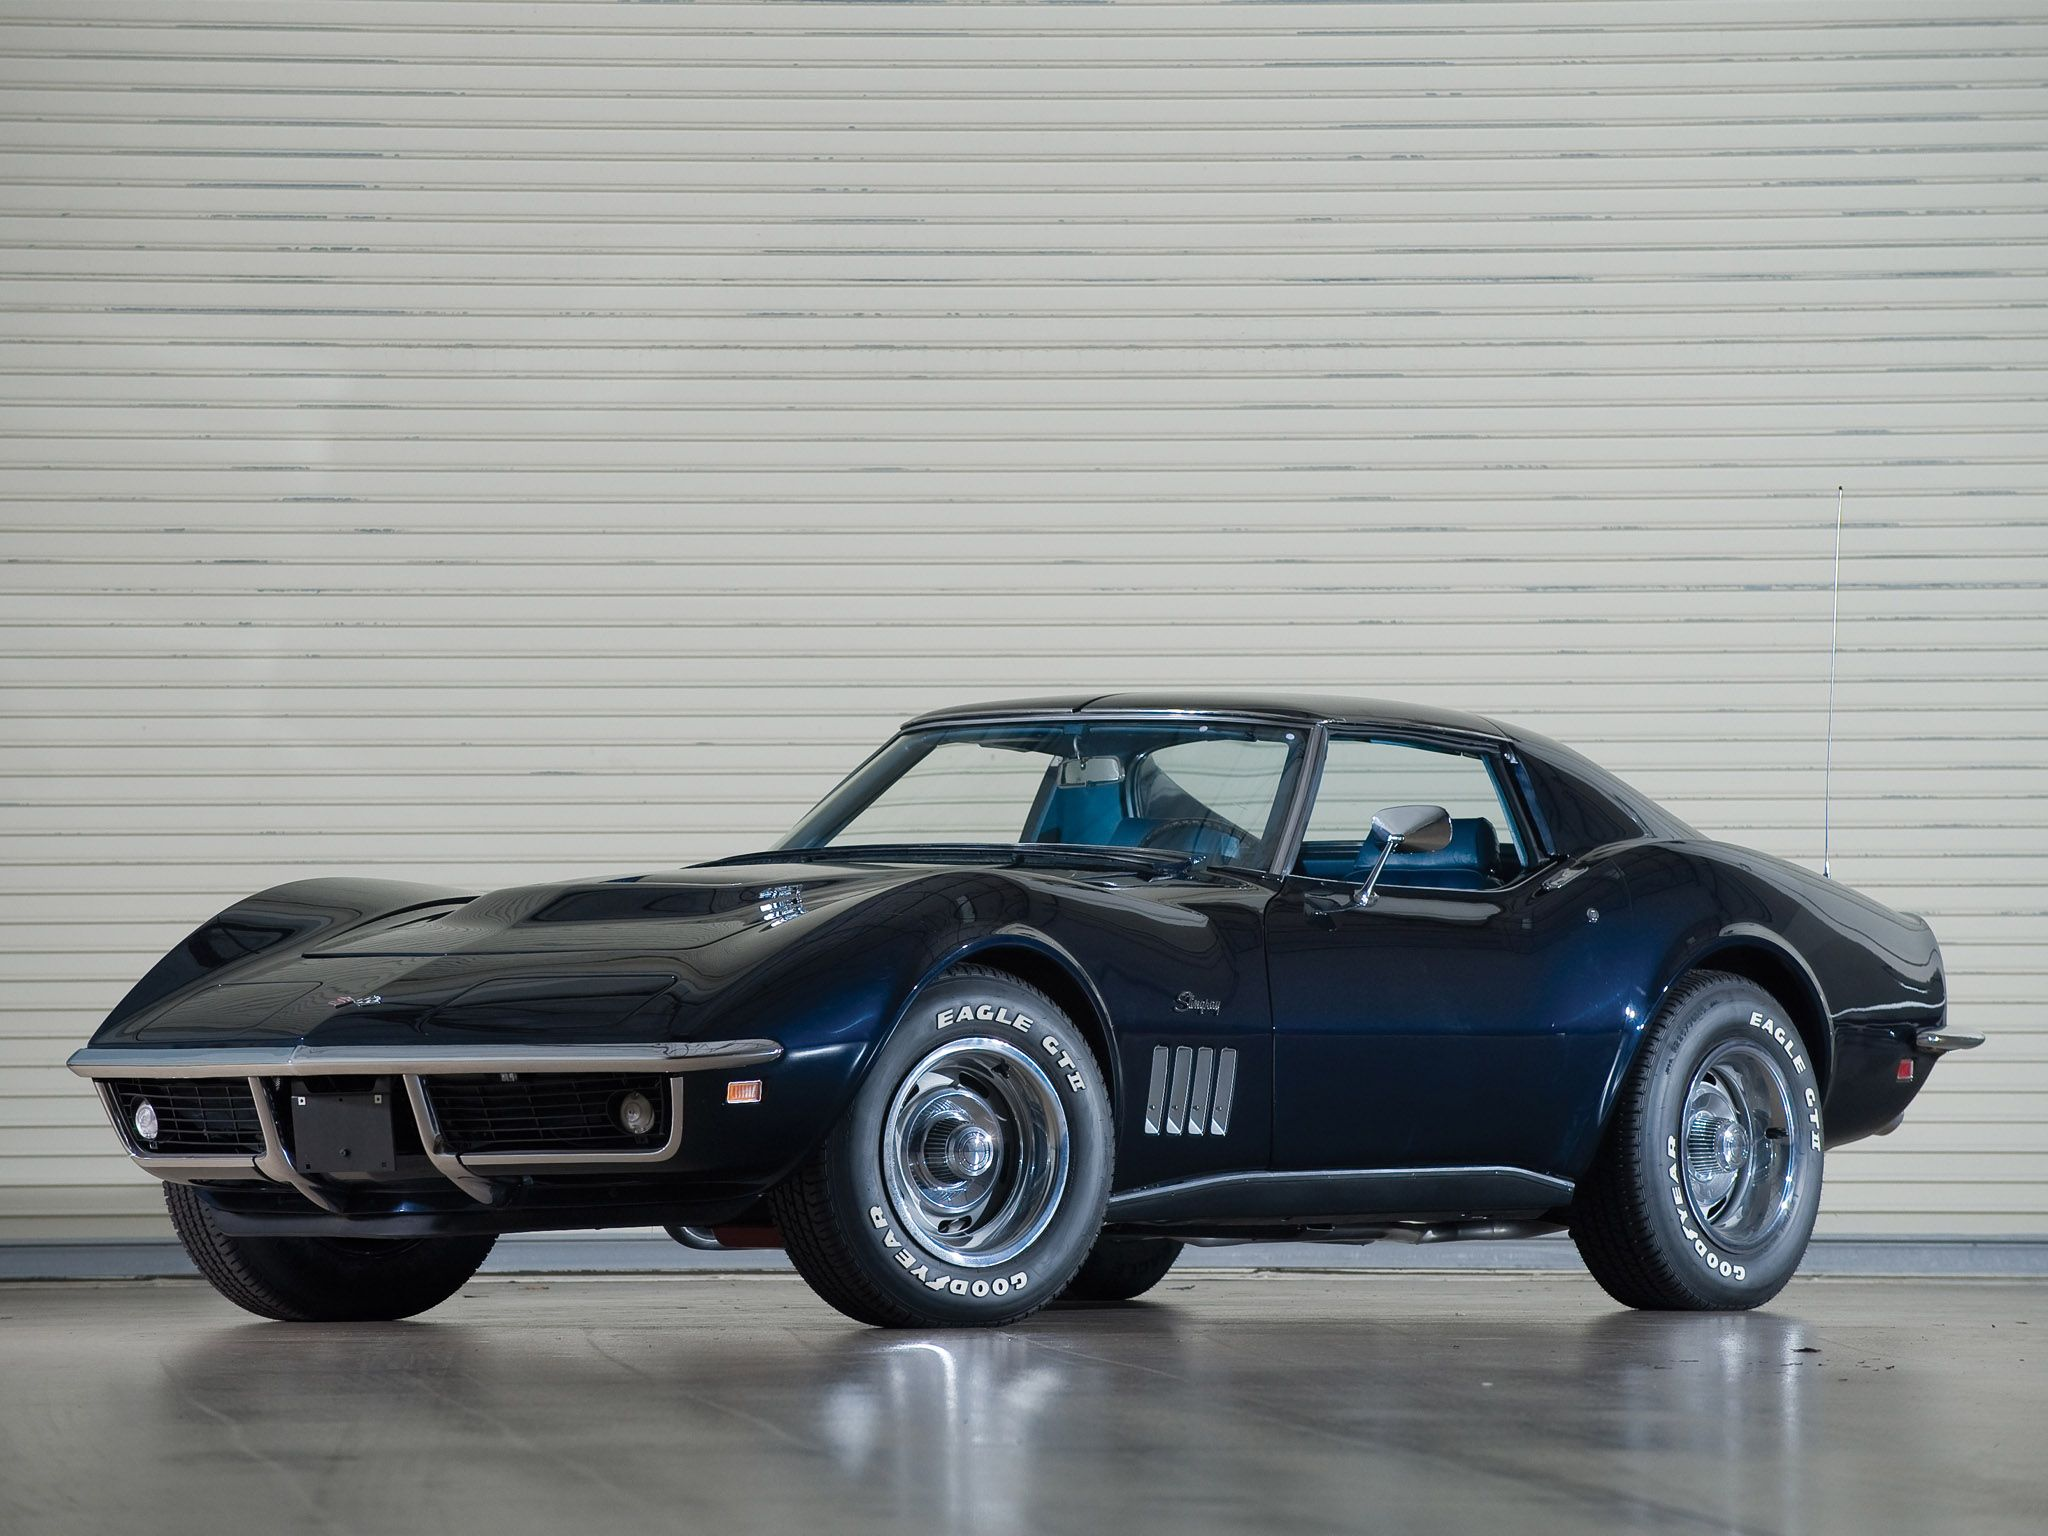 1969 chevrolet corvette c3 stingray 427 l36 corvettes pinterest best corvette c3 and. Black Bedroom Furniture Sets. Home Design Ideas